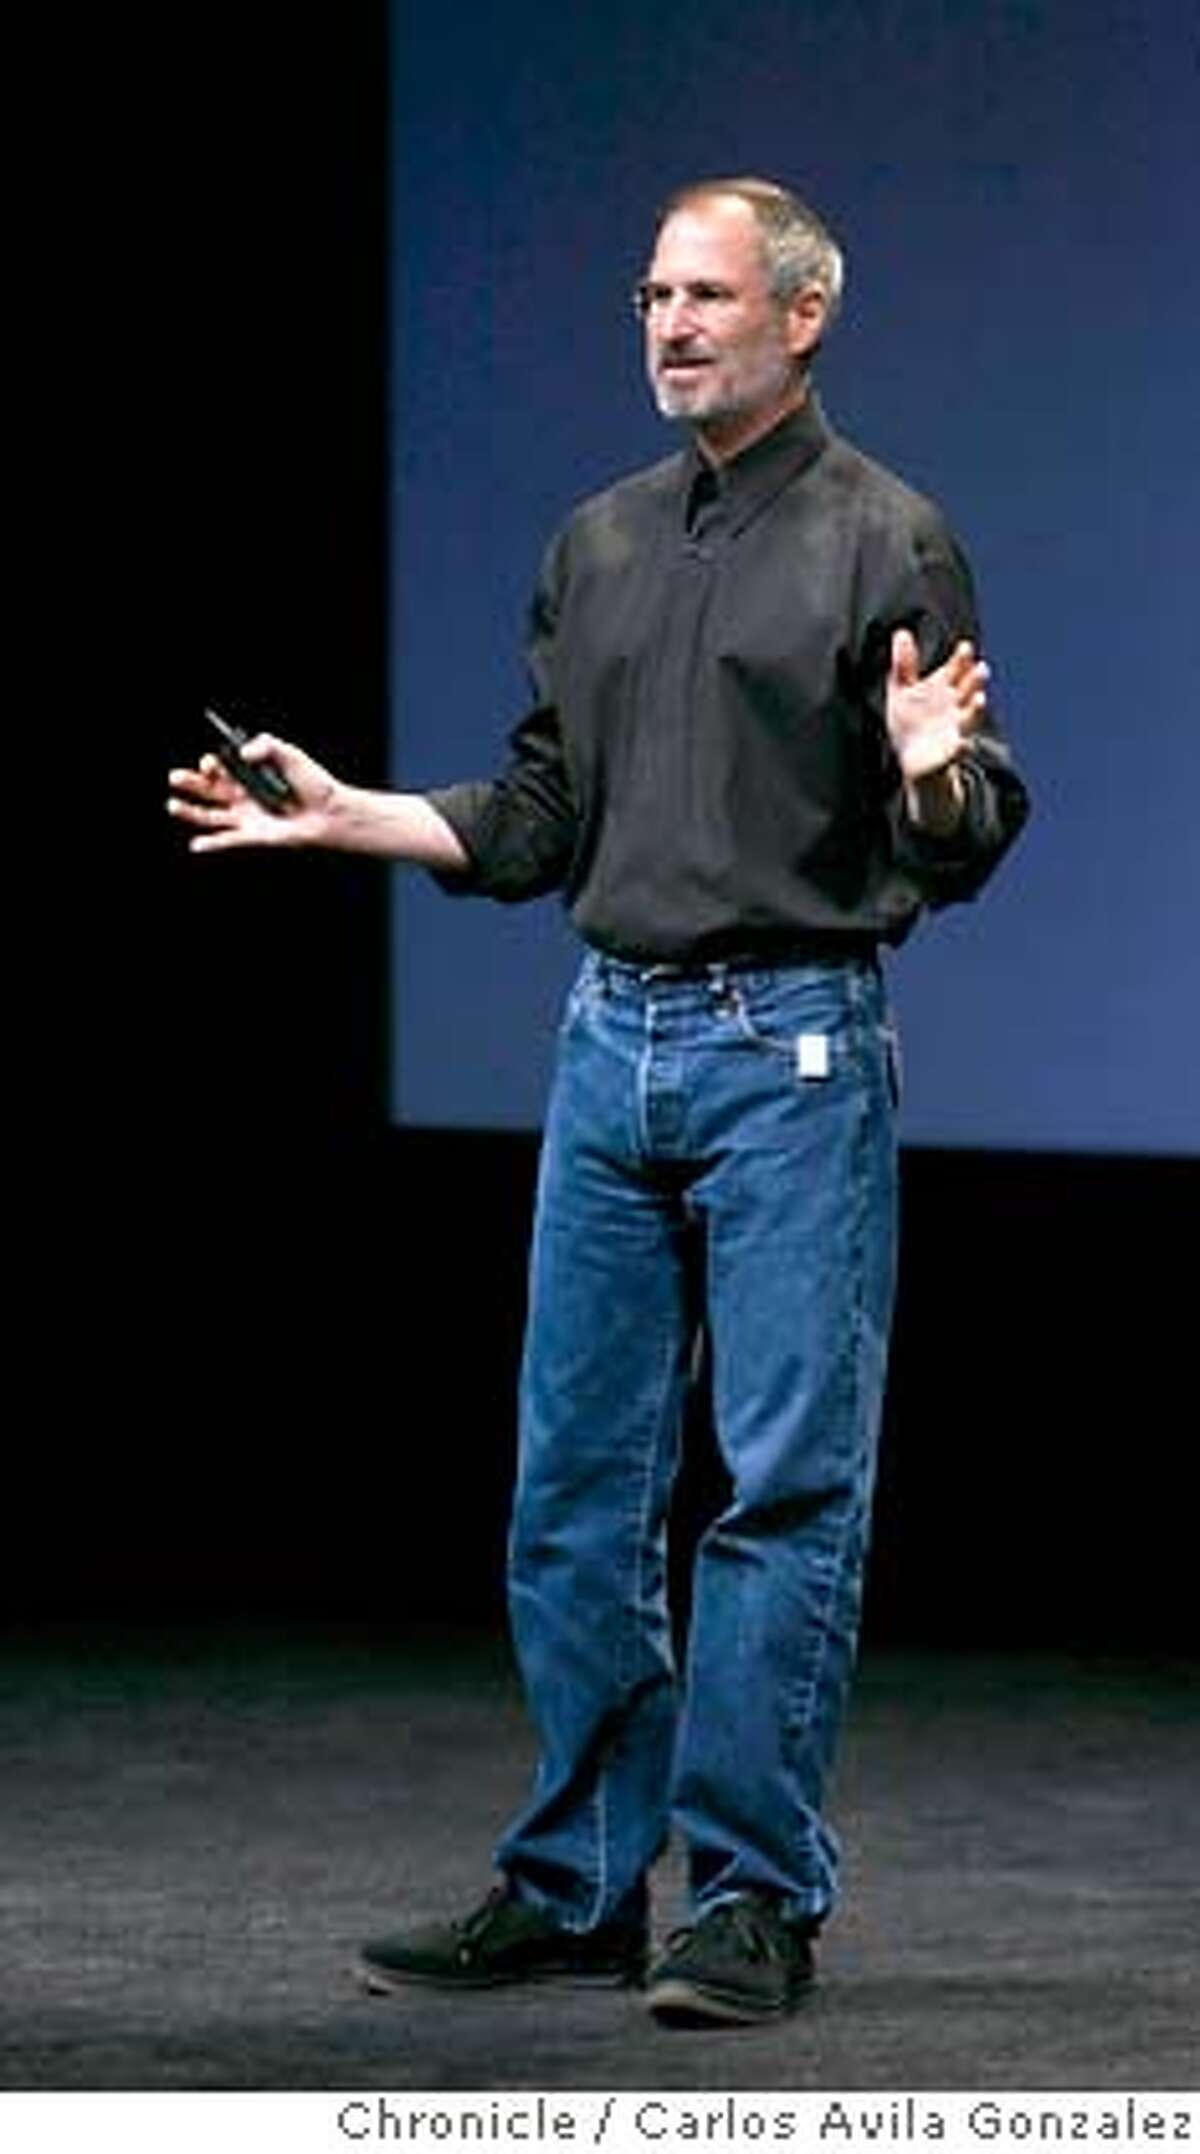 APPLE13_010_CAG.JPG Steve Jobs speaks to the audience wearing one of the new iPod Shuffles on his pants pocket. Apple unveils its latest iPod and iTunes upgrades and devices at a special event Tuesday, September 12, 2006, in San Francisco, Ca. Photo by Carlos Avila Gonzalez/The San Francisco Chronicle Photo taken on 9/12/06, in San Francisco, CA, USA **All names cq (source) Ran on: 10-05-2006 Ran on: 10-05-2006 Ran on: 01-13-2007 Steve Jobs and Apple are being scrutinized. Ran on: 01-13-2007 MANDATORY CREDIT FOR PHOTOG AND SAN FRANCISCO CHRONICLE/ -MAGS OUT